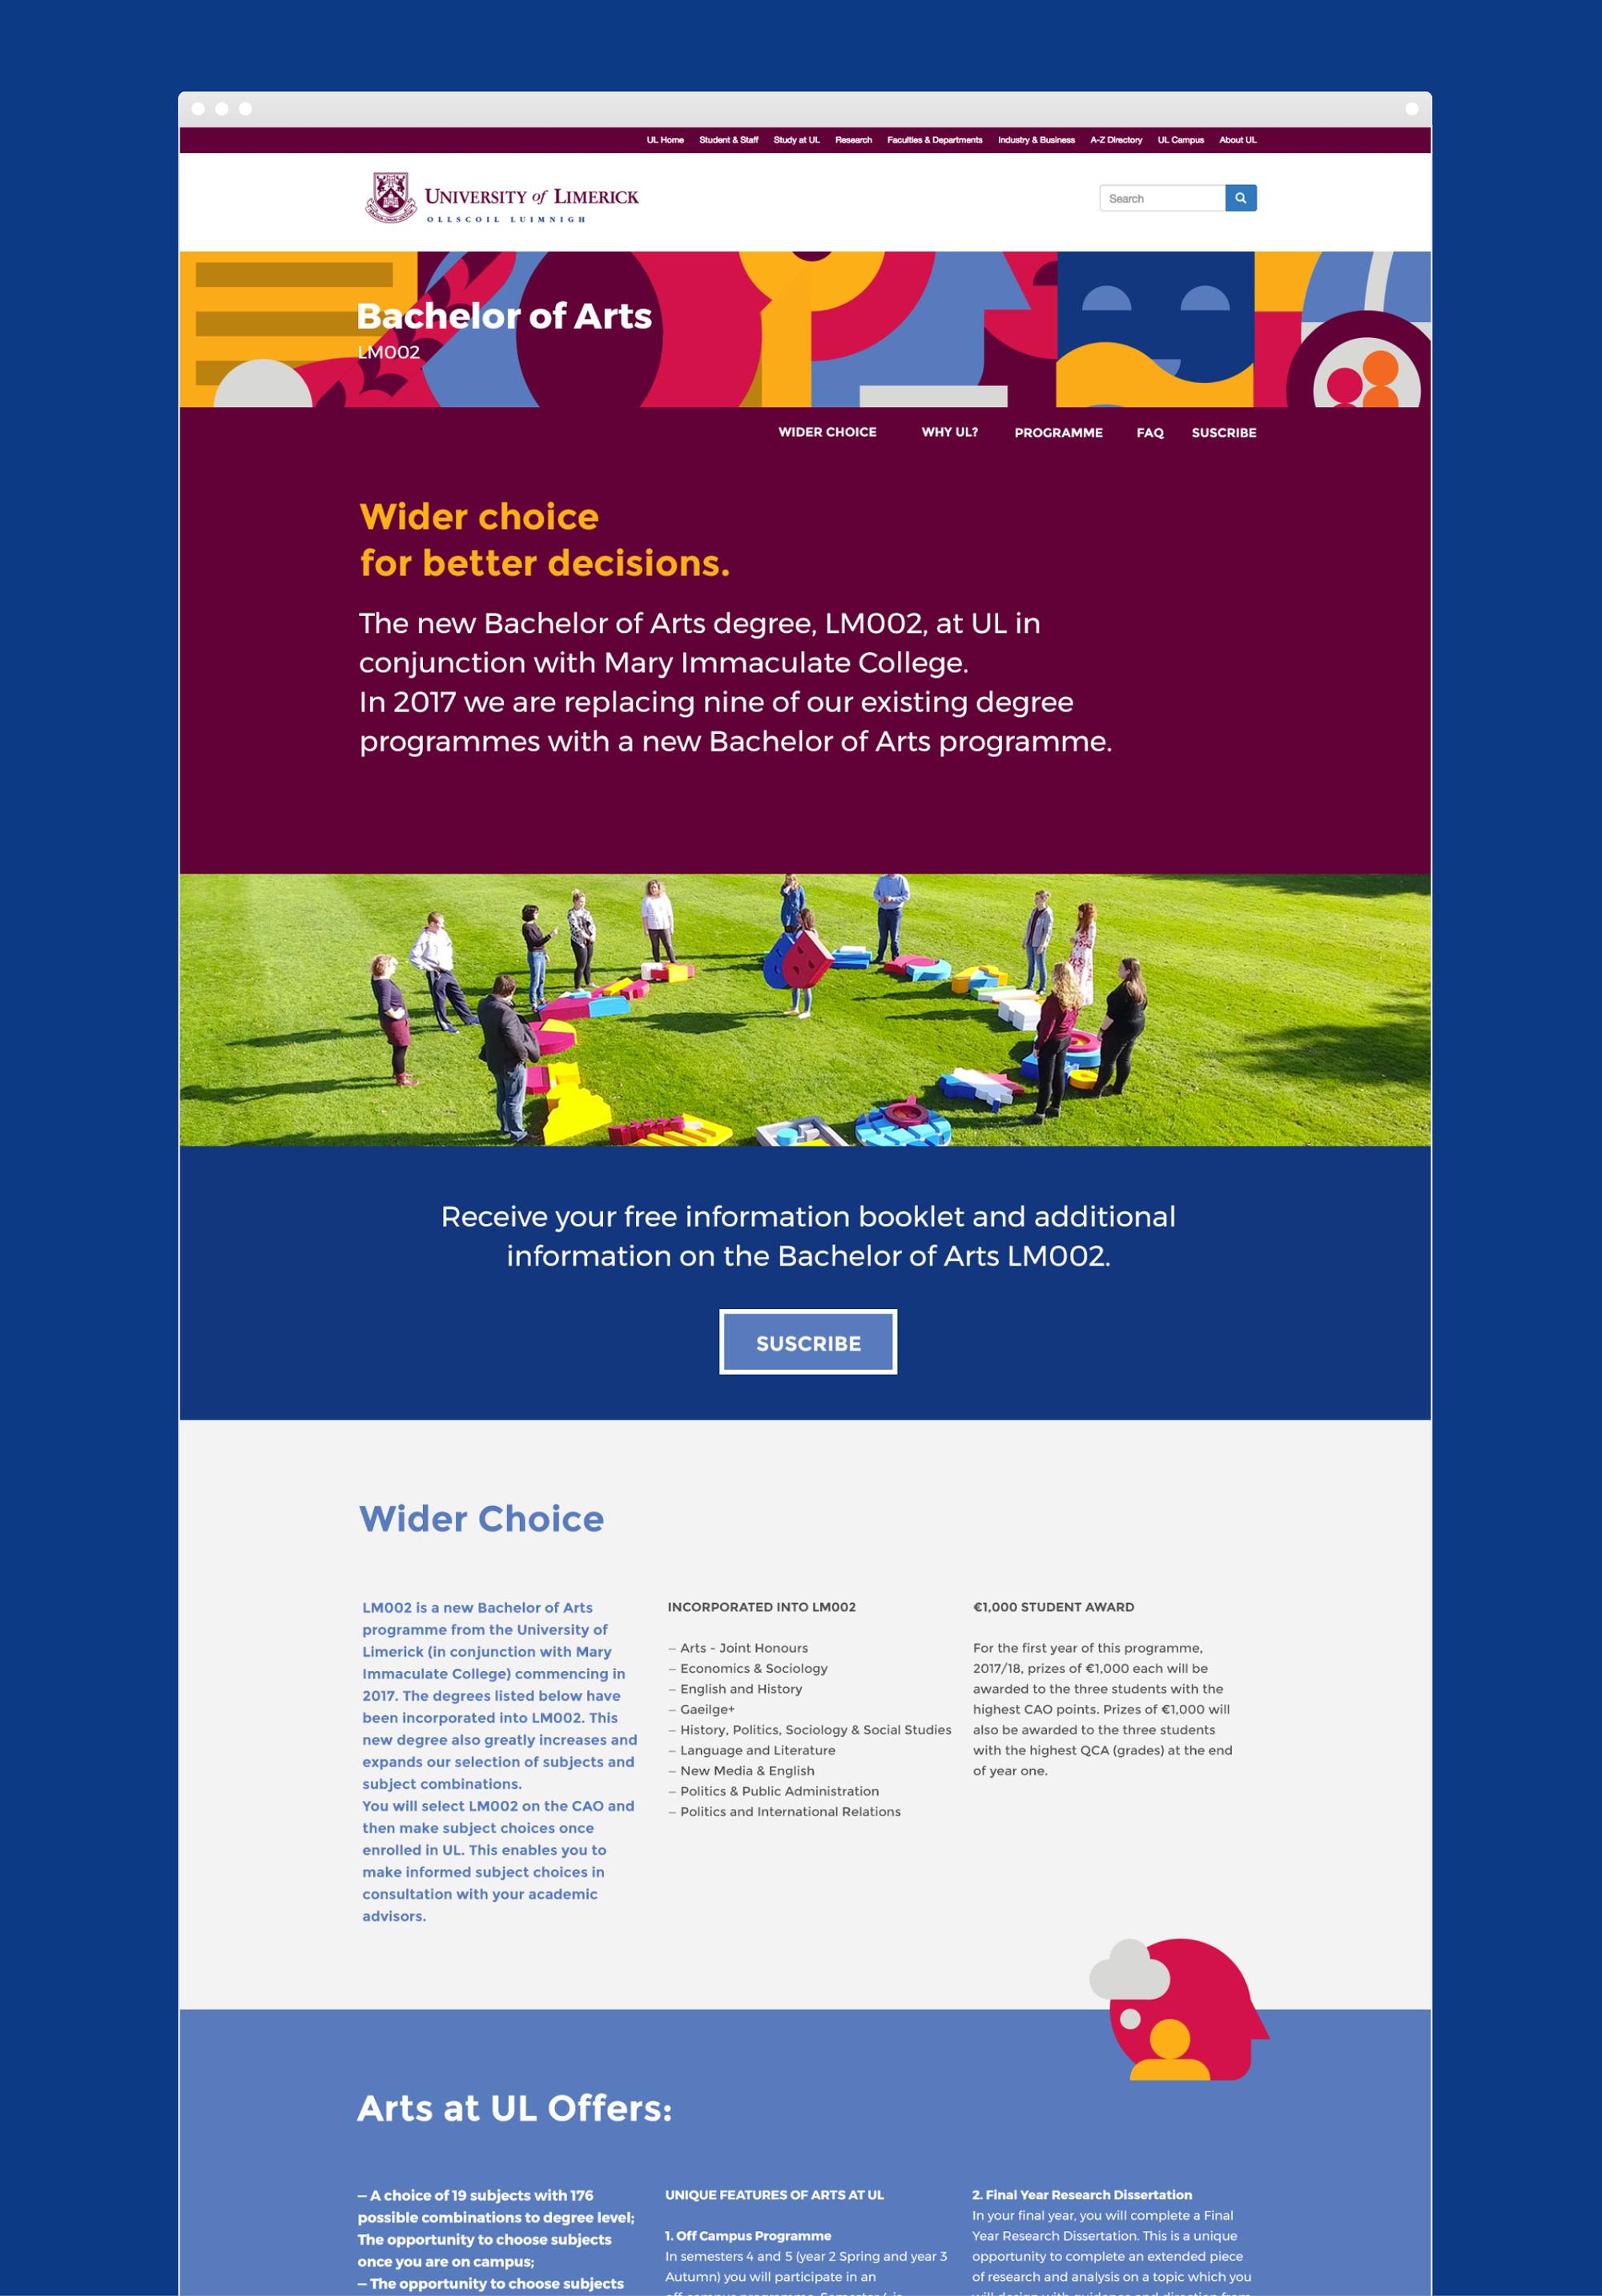 UL website design homepage introducing the Bachelor of Arts degree